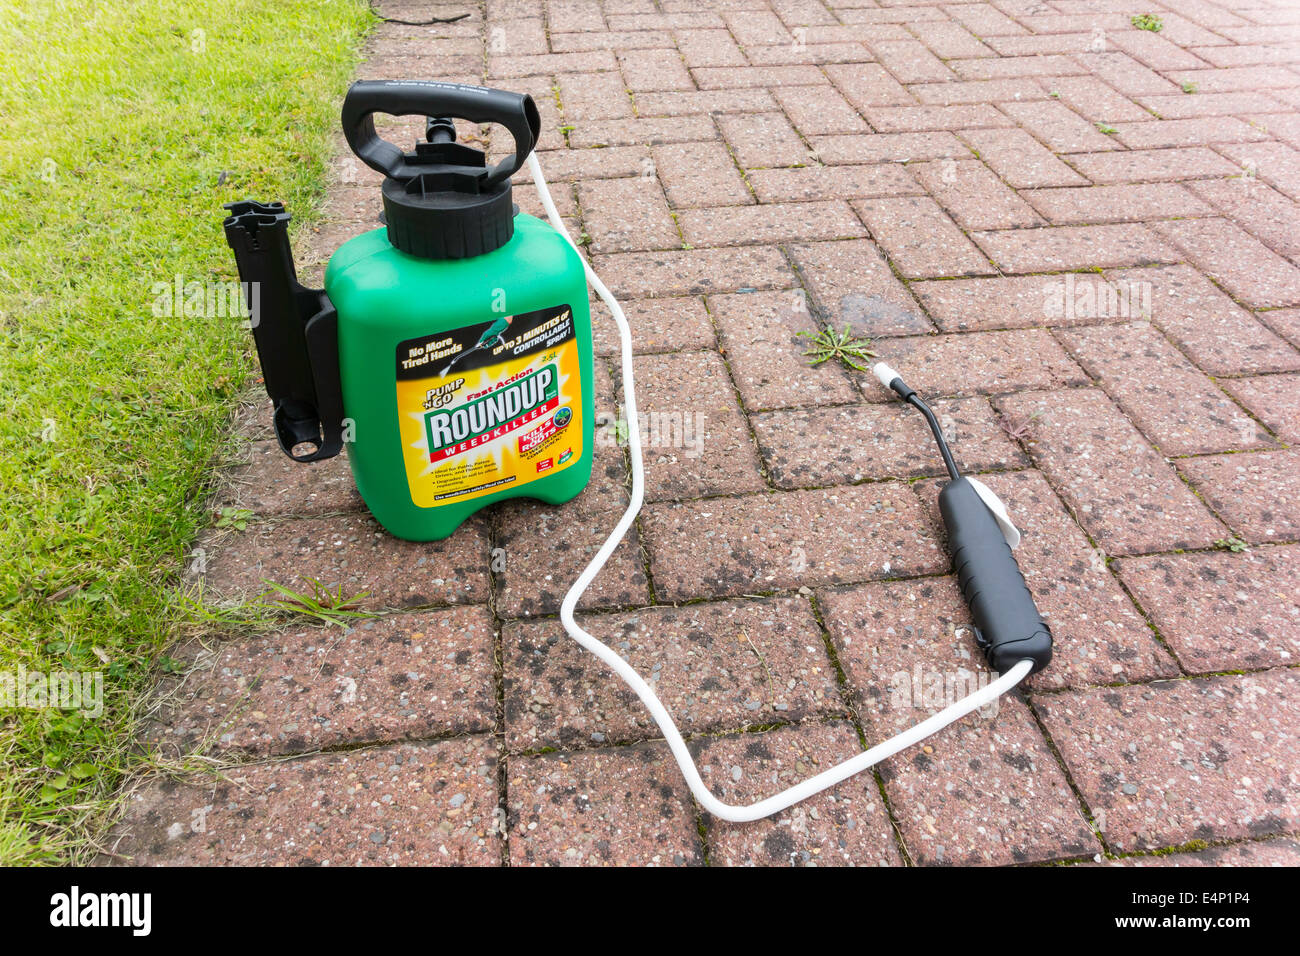 Roundup Weedkiller Applicator For Killing Weeds In Paths Pavements And Driveways